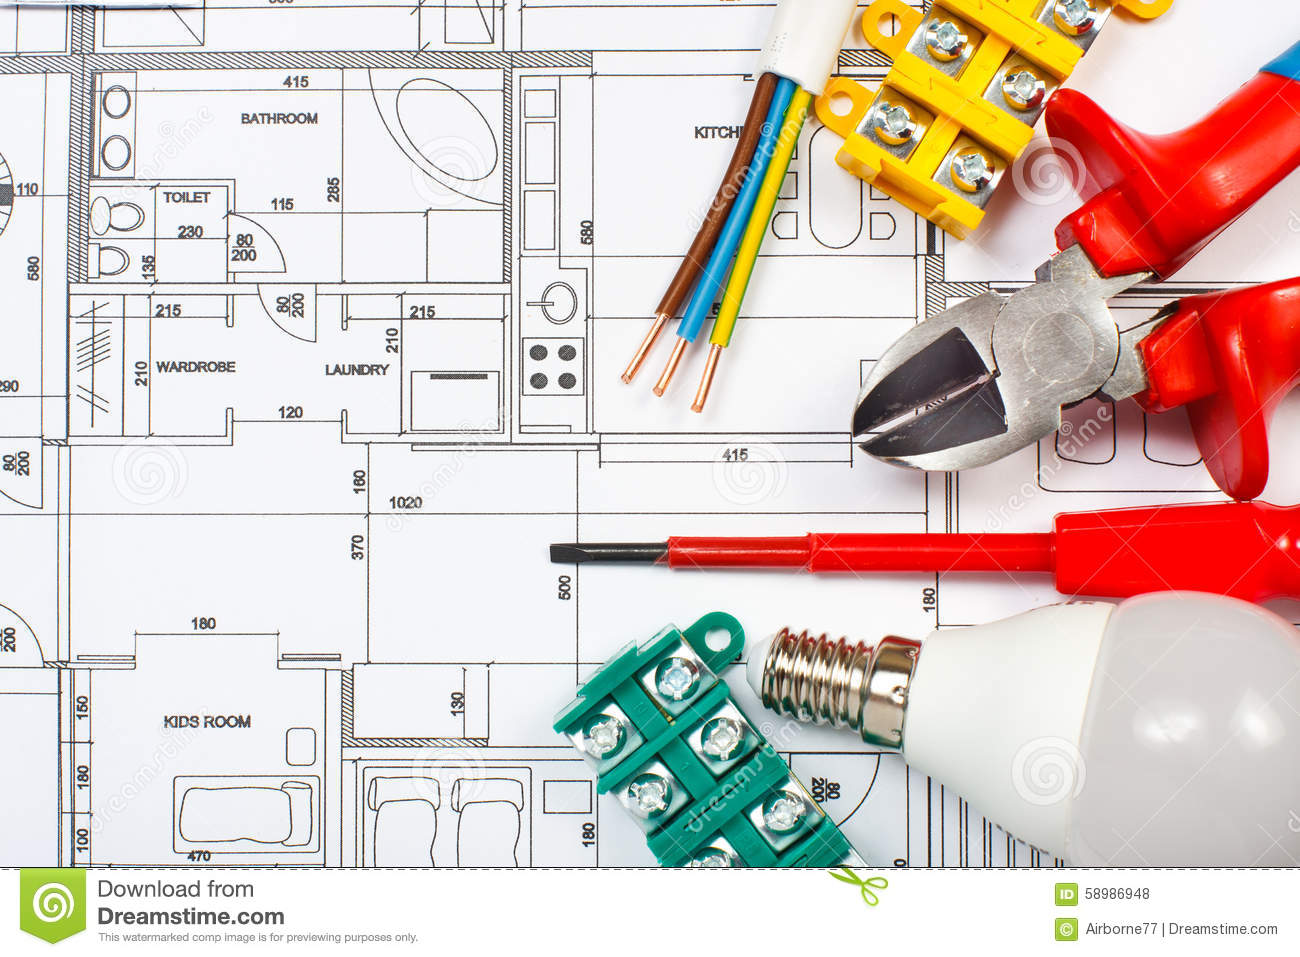 Electrical equipment stock photo image of electrician 58986948 electrical equipment ccuart Image collections